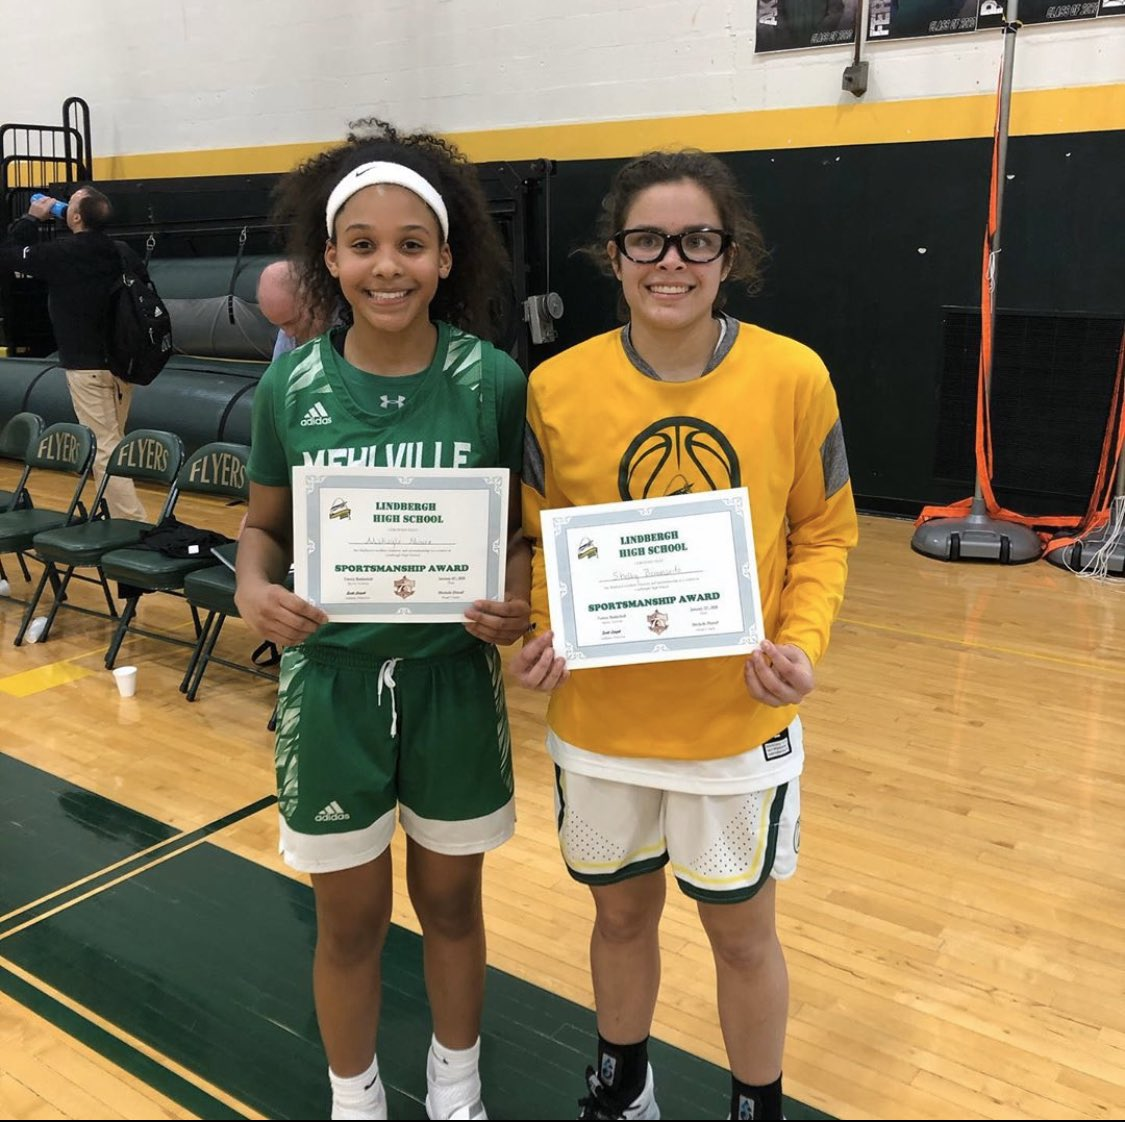 Congrats to Makayla & Shelby for receiving the Suburban Sportsmanship Award for tonight's game!